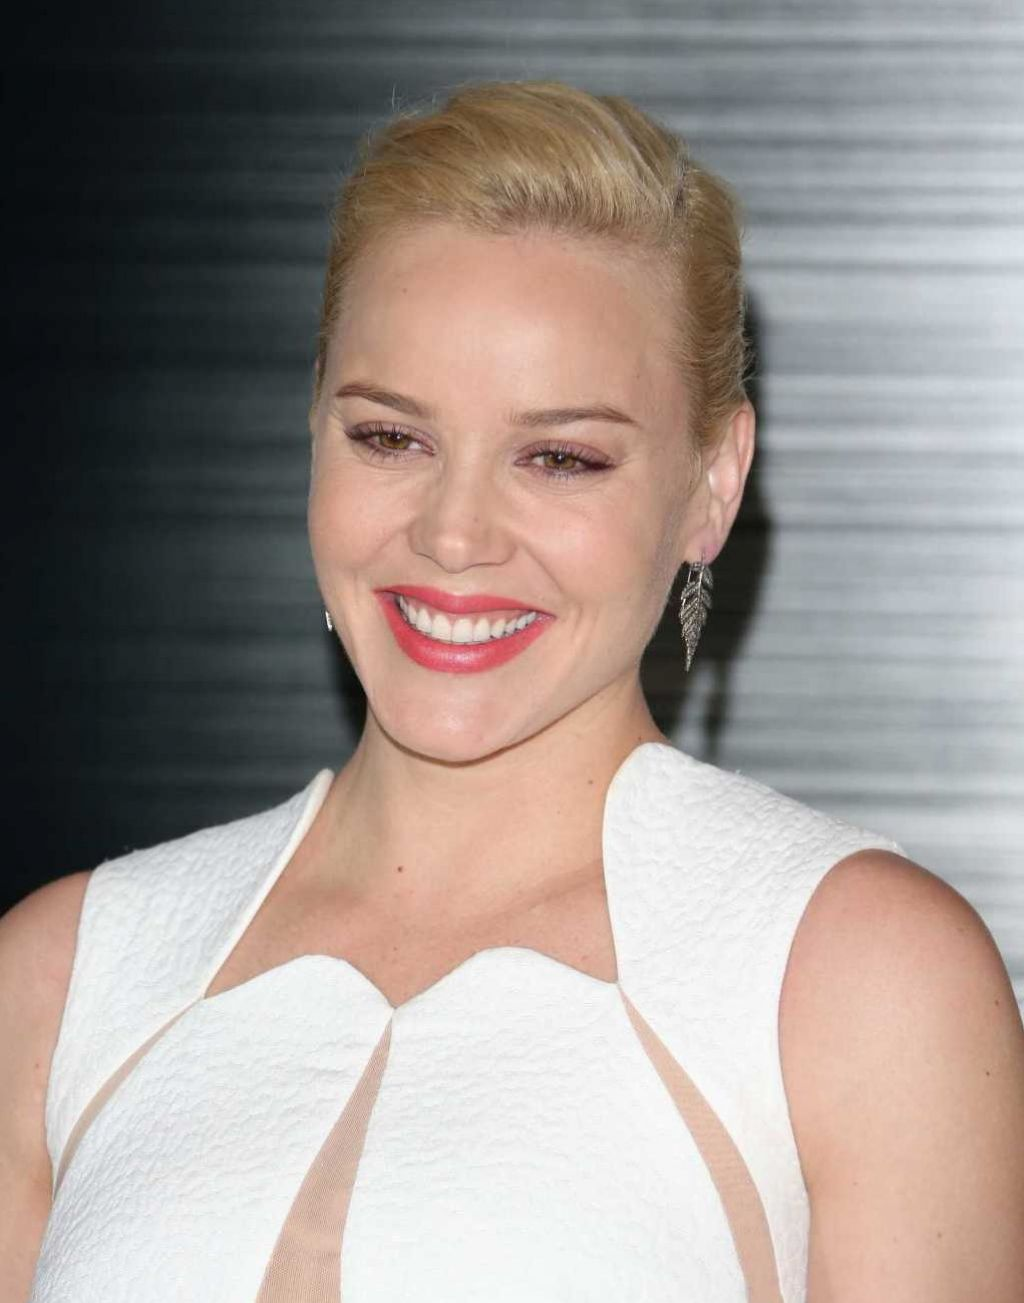 Abbie Cornish - ROBOCOP Movie Photo Call - Los Angeles, January 2014